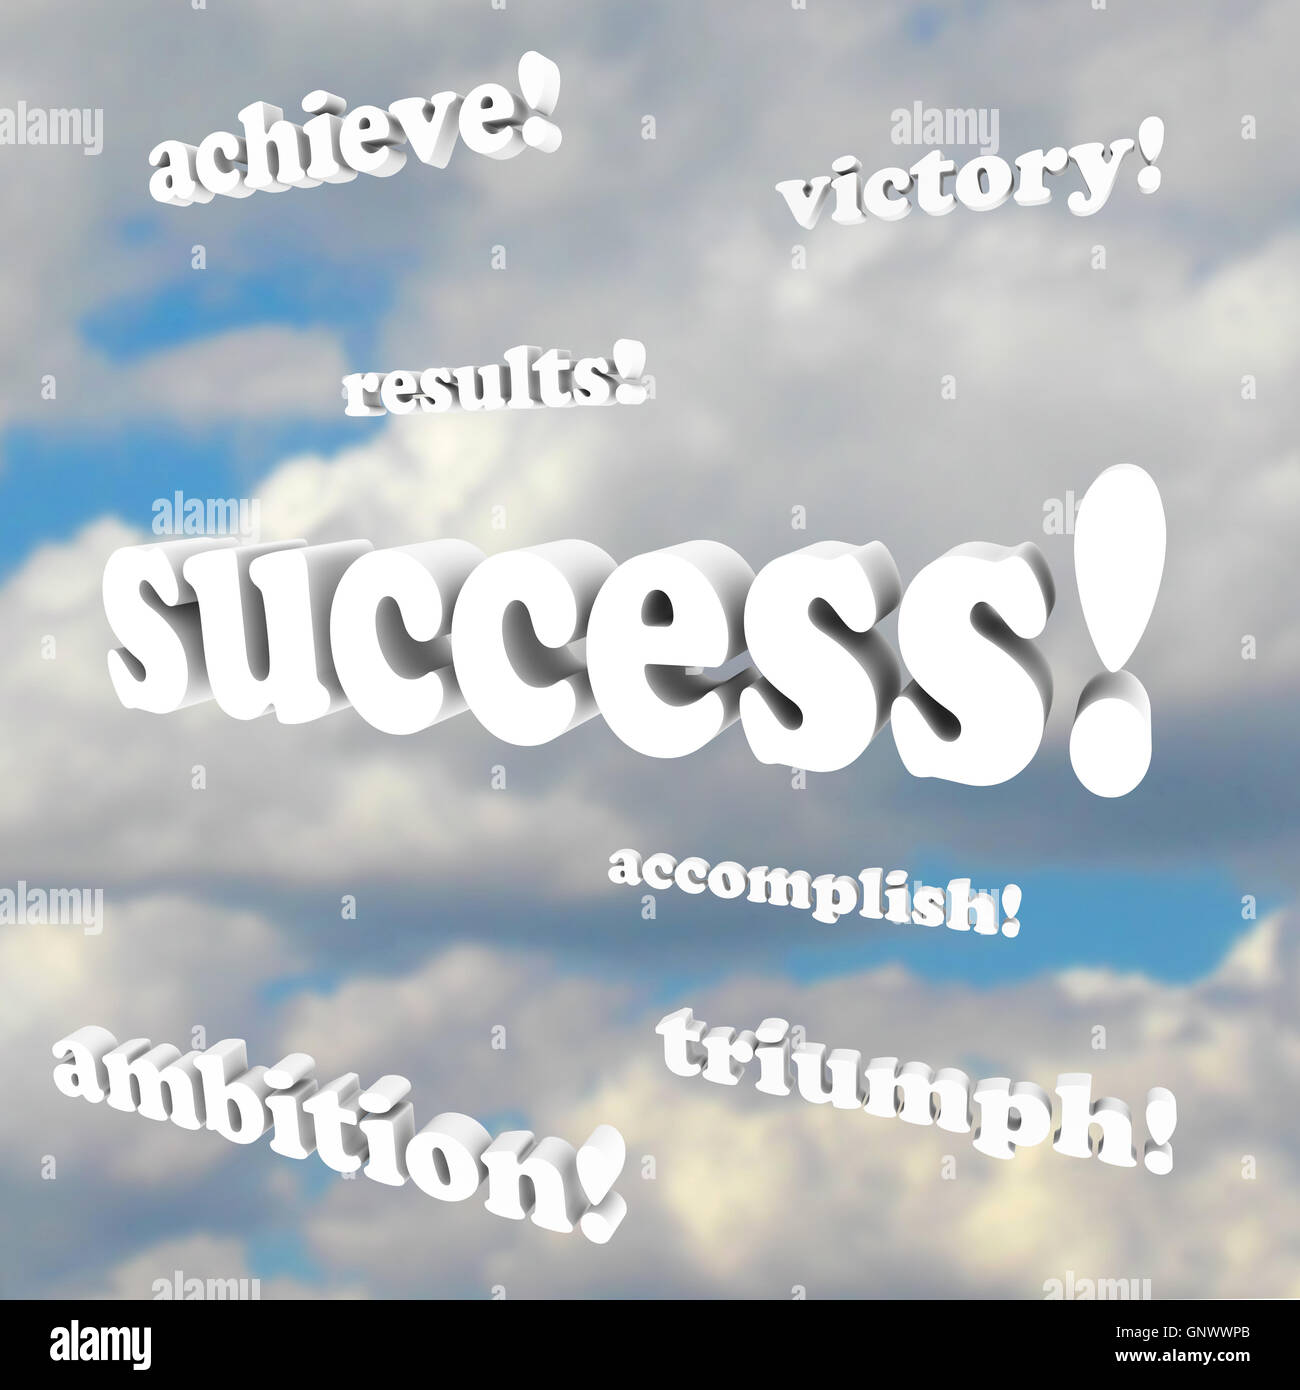 Success Words in Clouds - Achieve Goals be Successful in Life - Stock Image